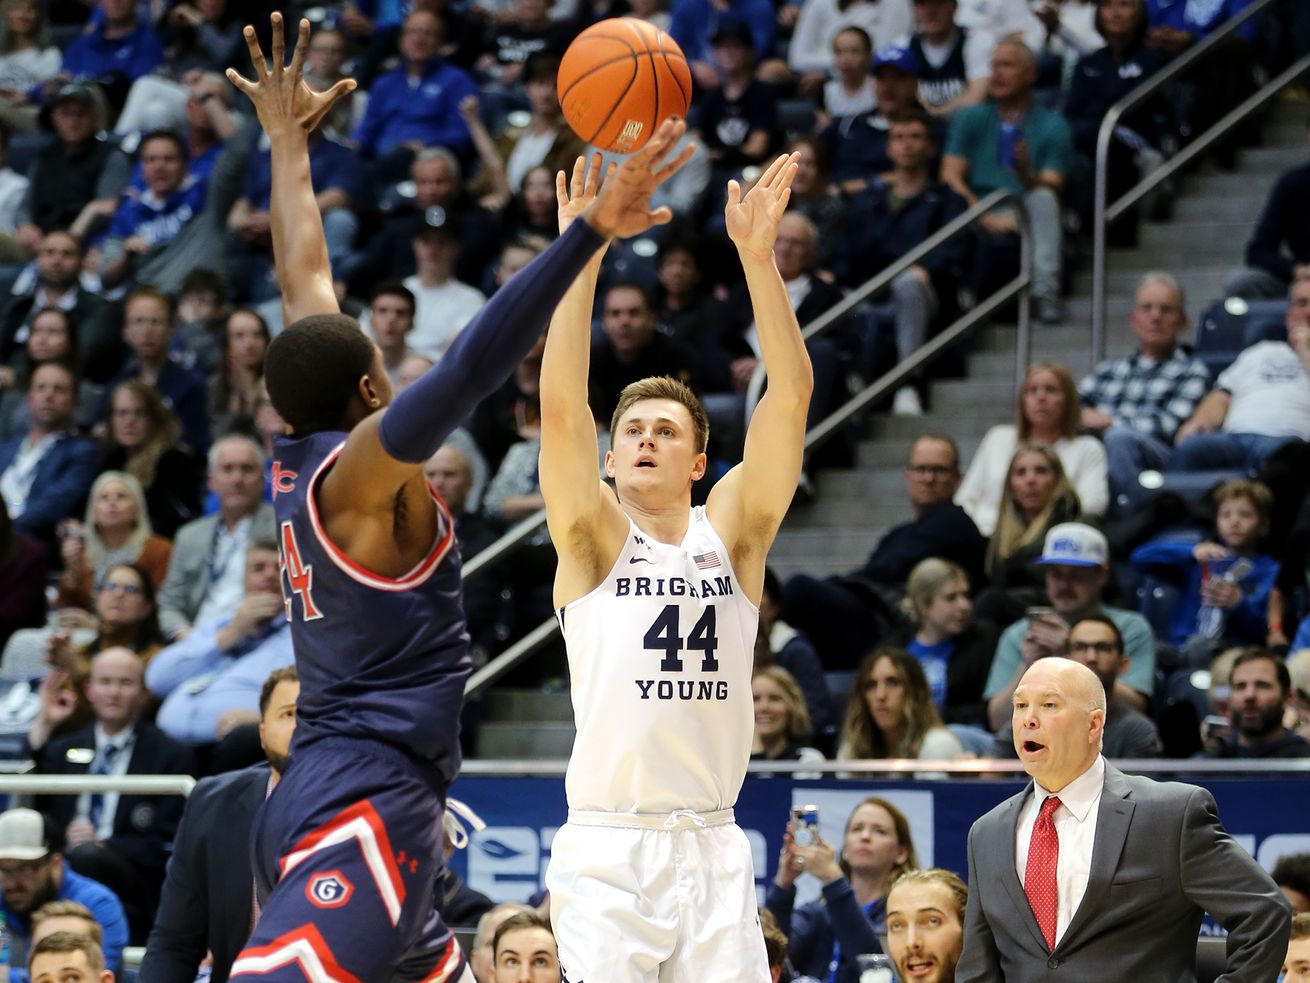 Besides Alex Barcello, which BYU players will be become consistent, prolific scorers this season?